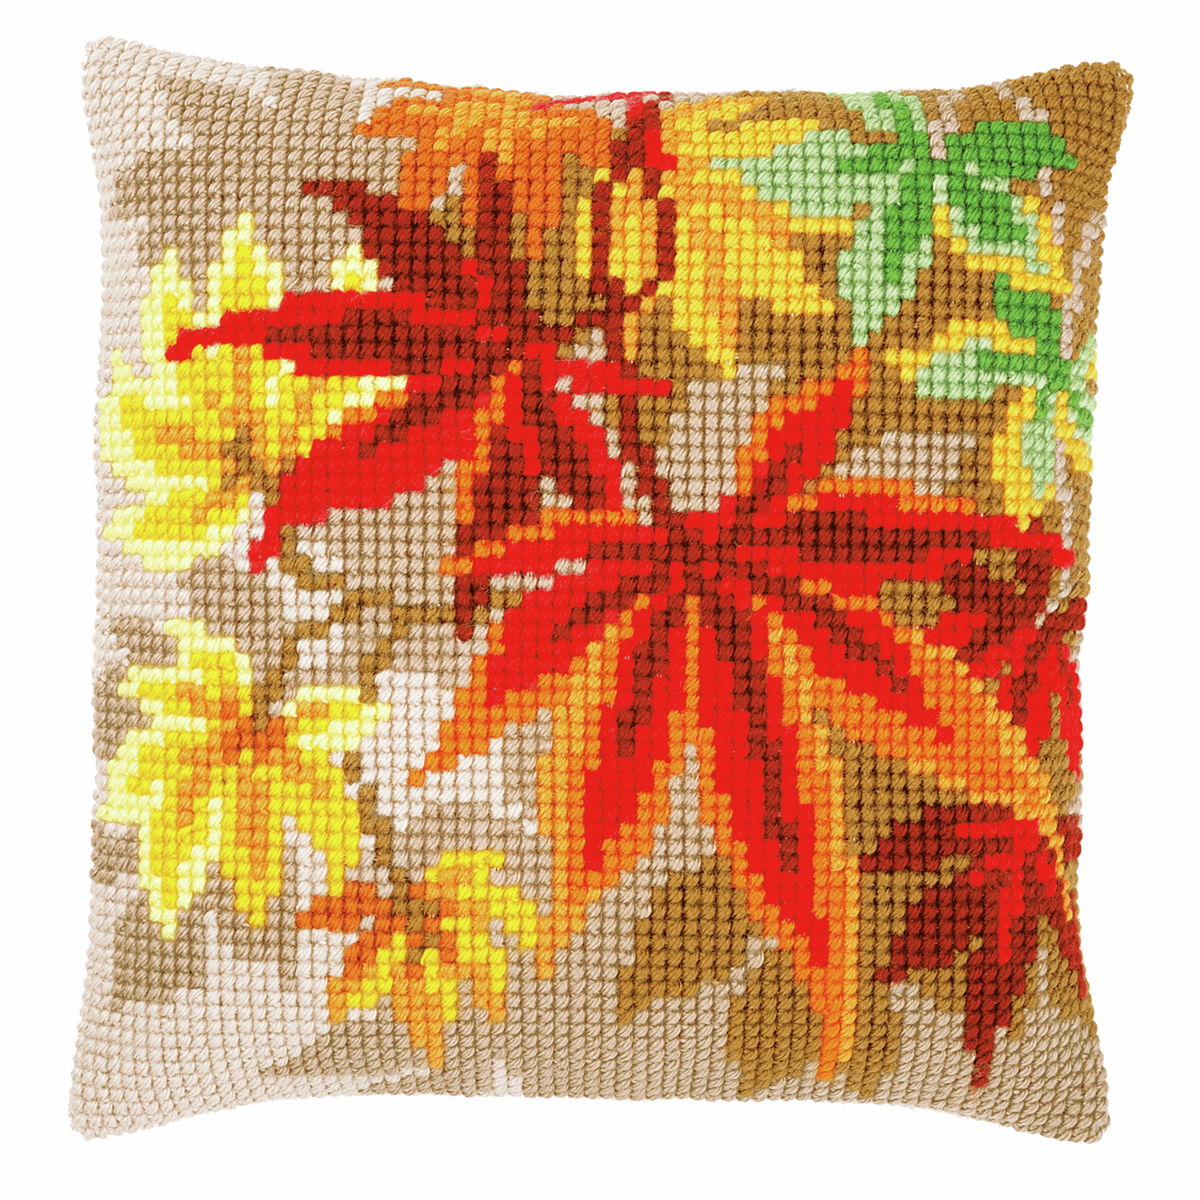 Picture of Cross Stitch Cushion Kit: Autumn Leaves